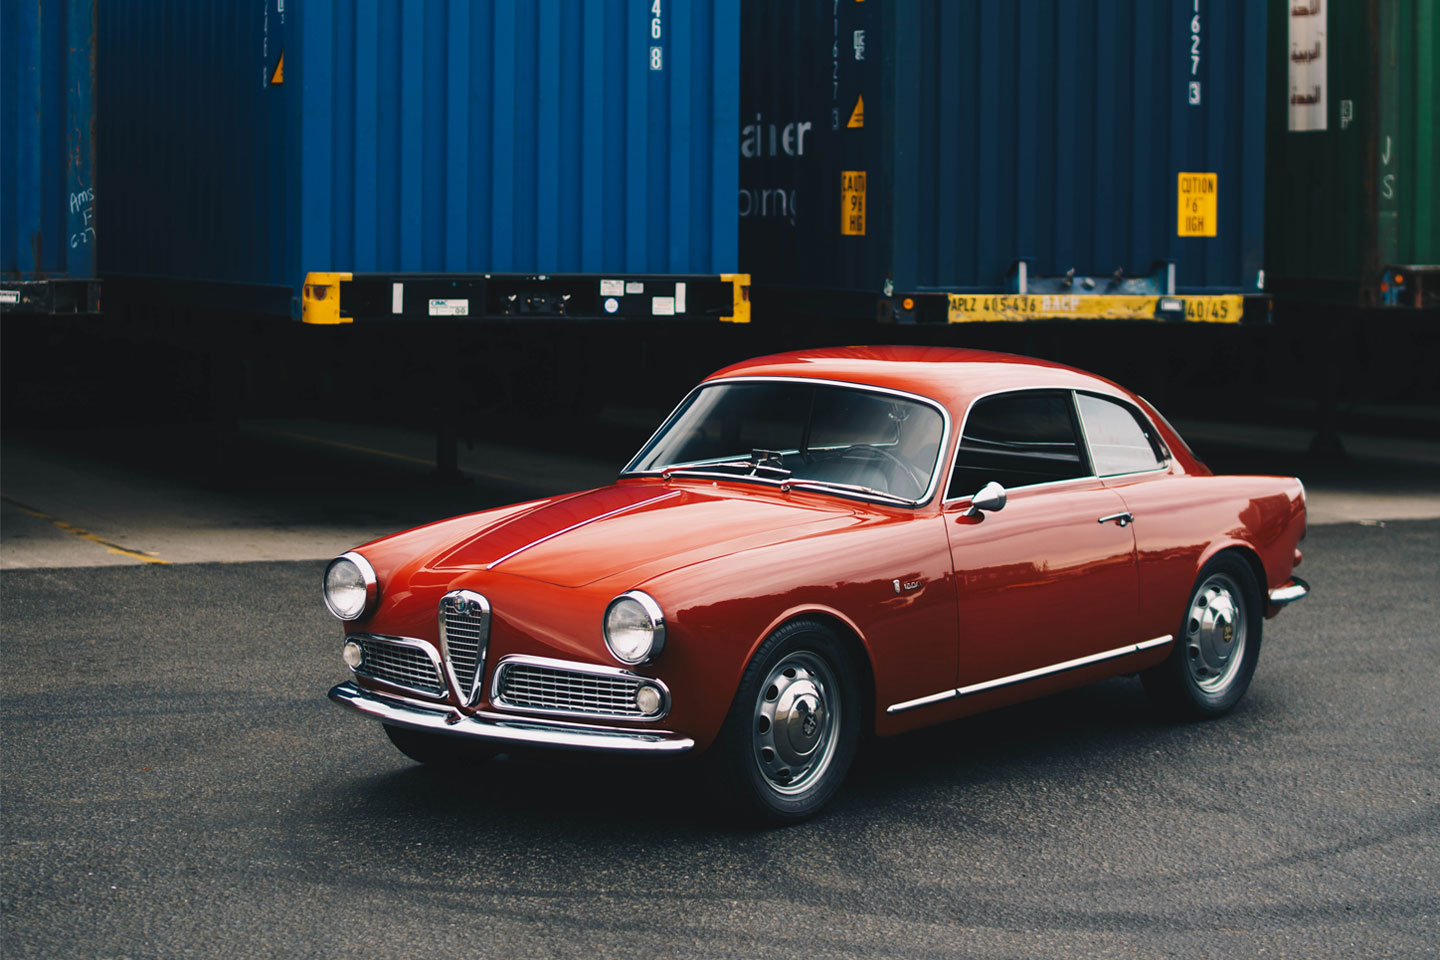 Getting Acquainted With An Alfa Romeo Giulia Sprint